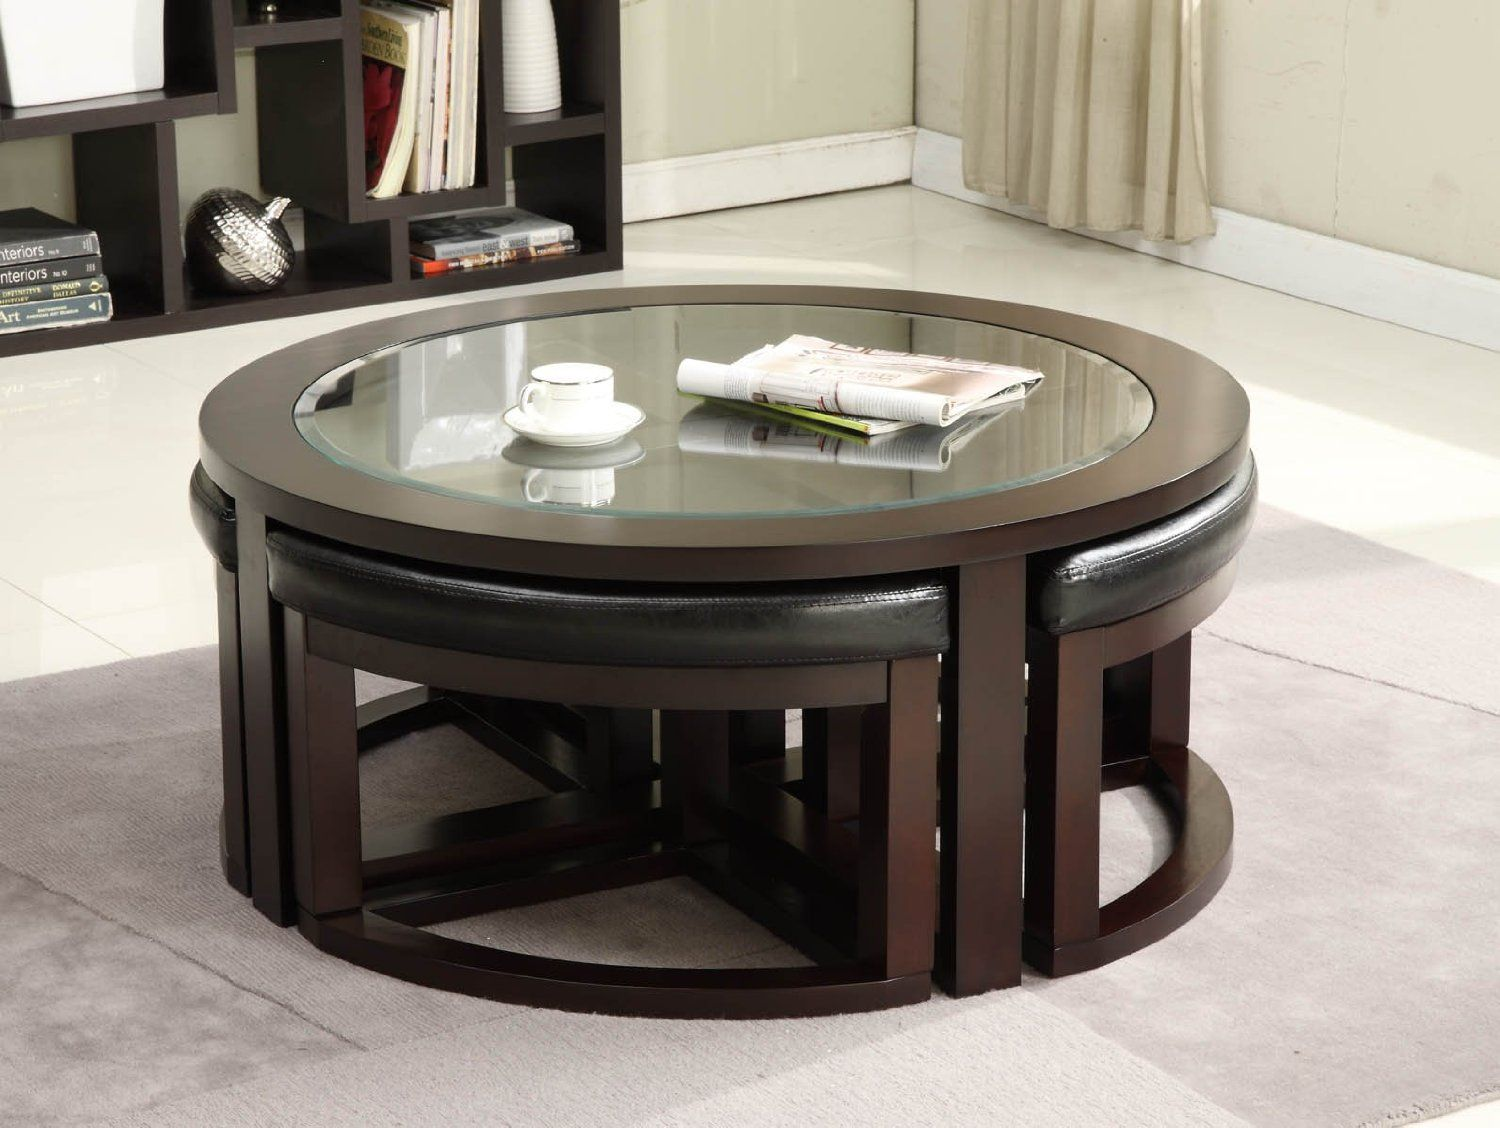 Gl Coffee Table With Stools Underneath